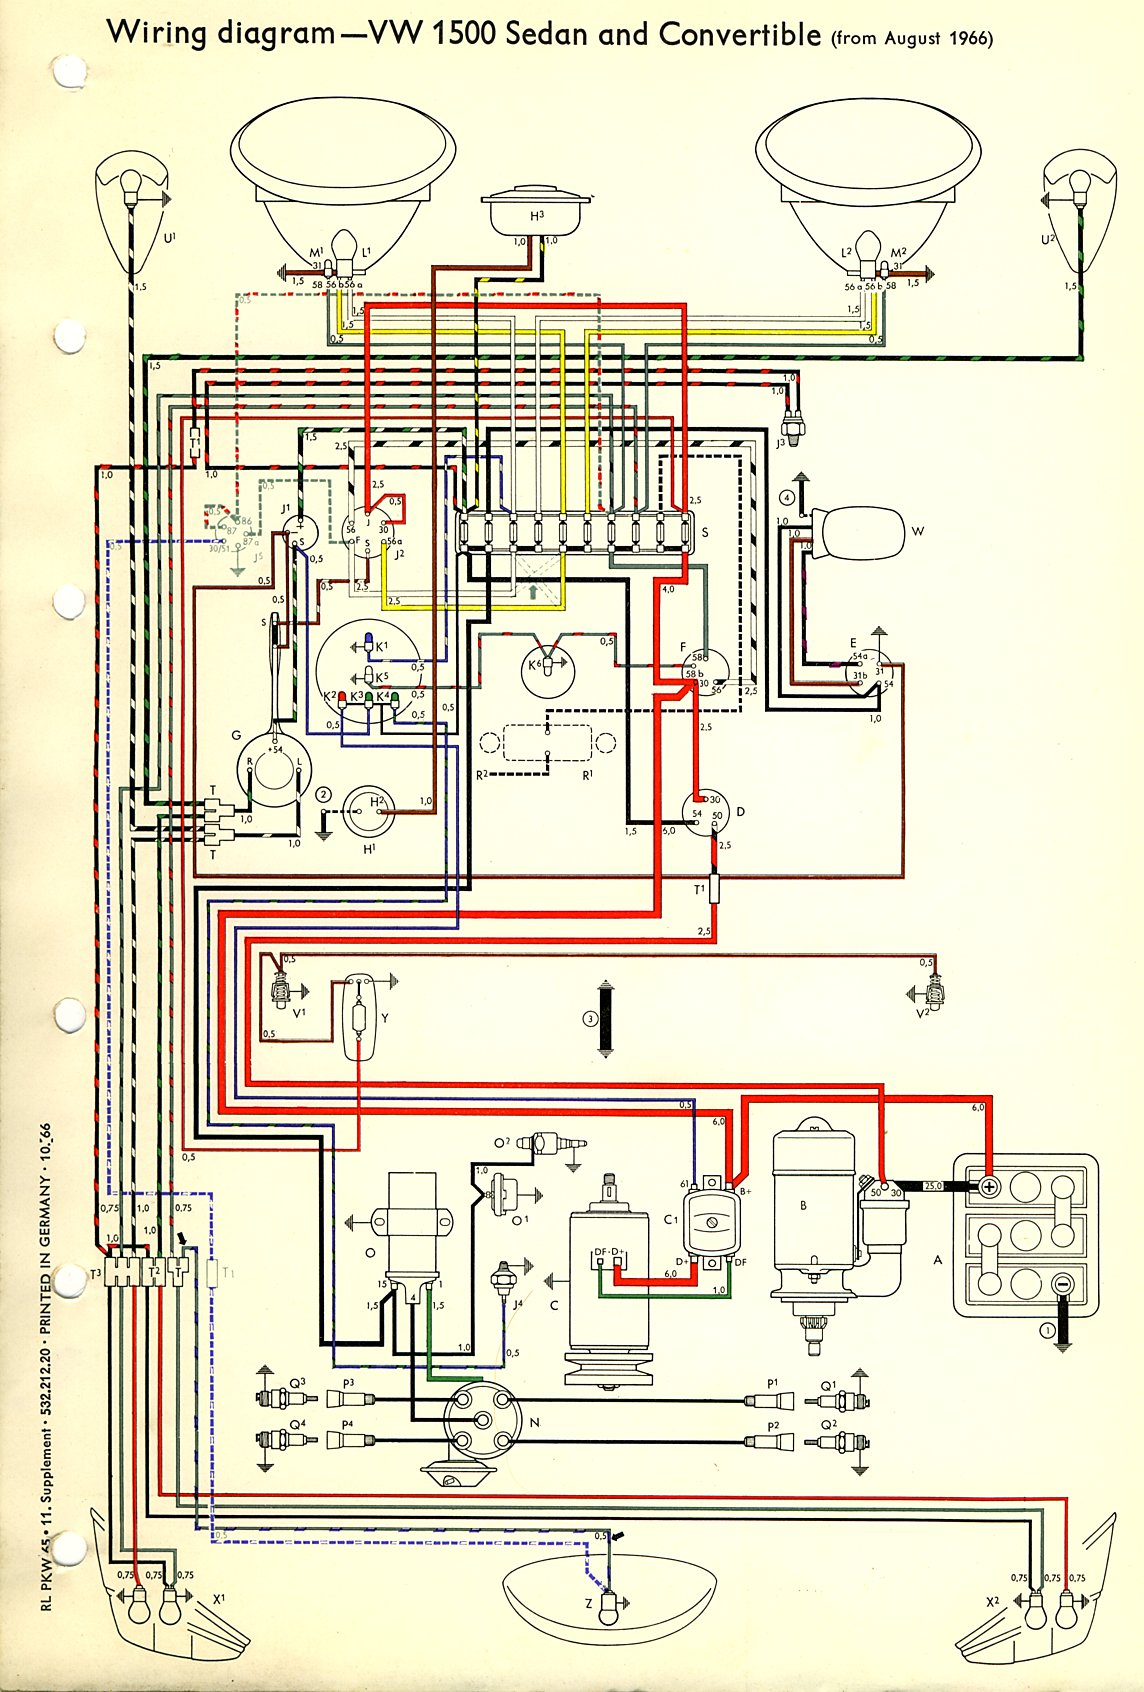 wiring diagram vw beetle 1973 data wiring diagram u2022 rh vitaleapp co 2000 volkswagen beetle wiring diagram 2000 vw beetle wiring schematics